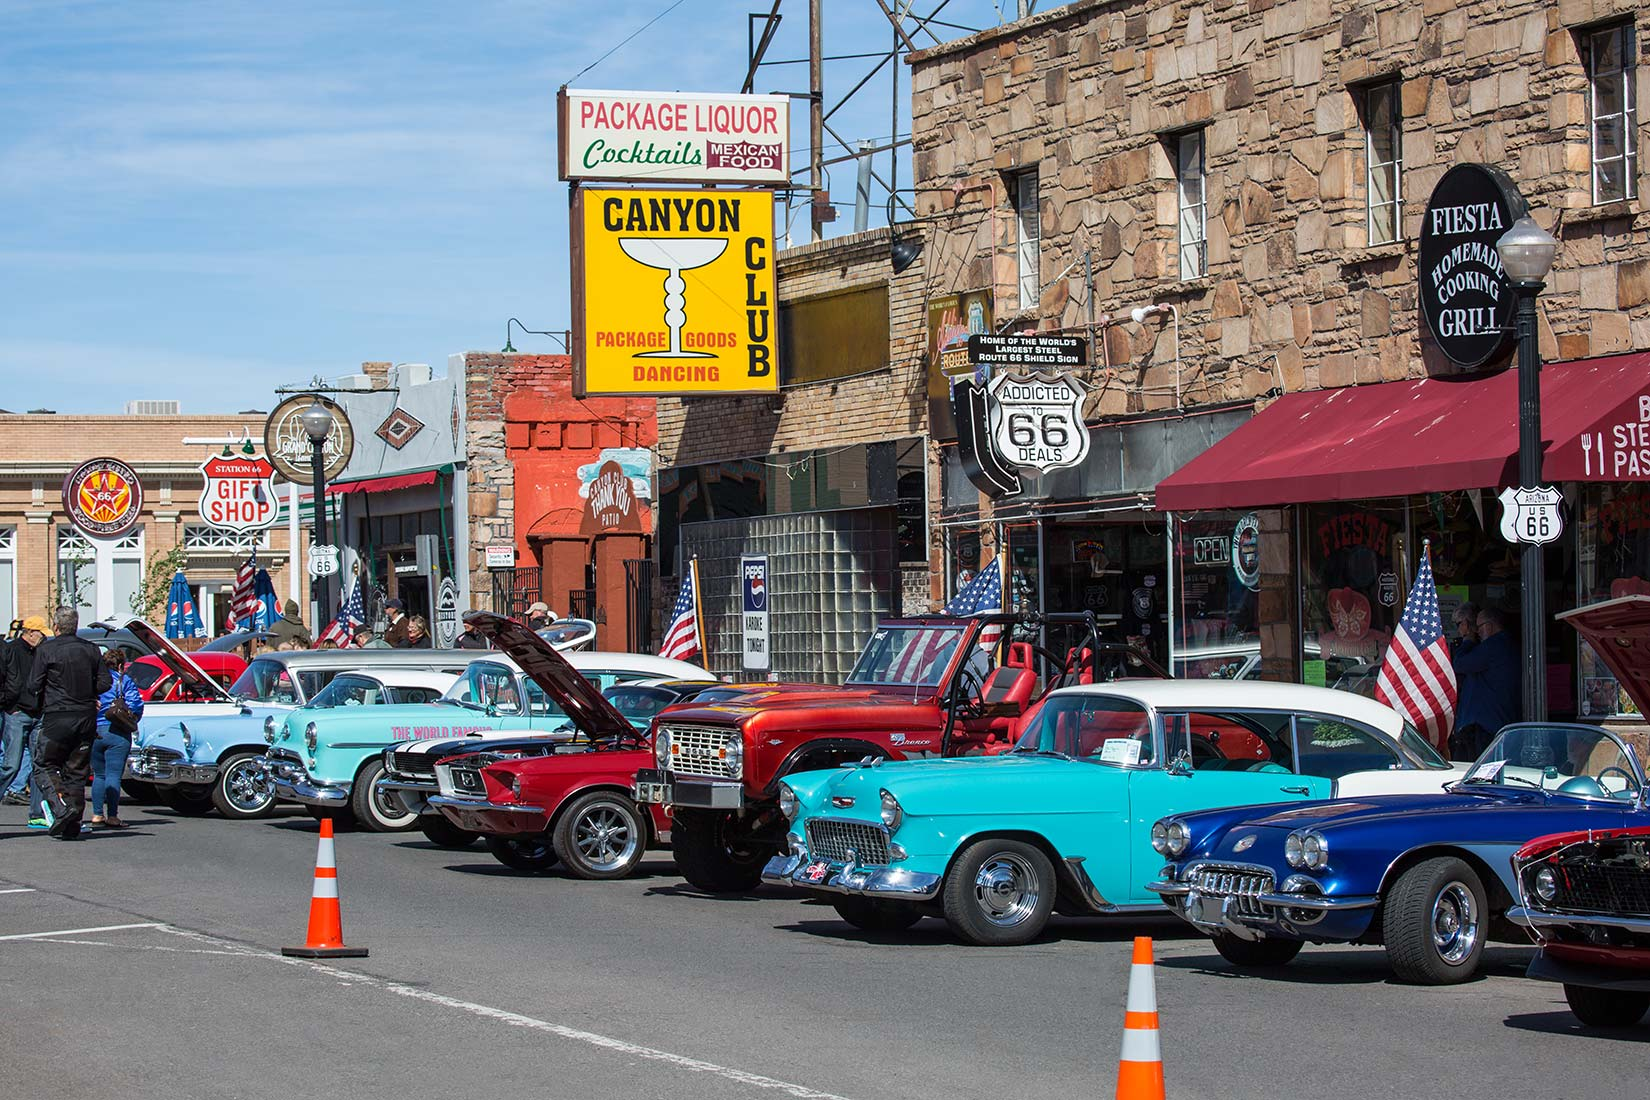 HISTORICAL ROUTE CAR SHOW IN WILLIAMS - Route 66 car show